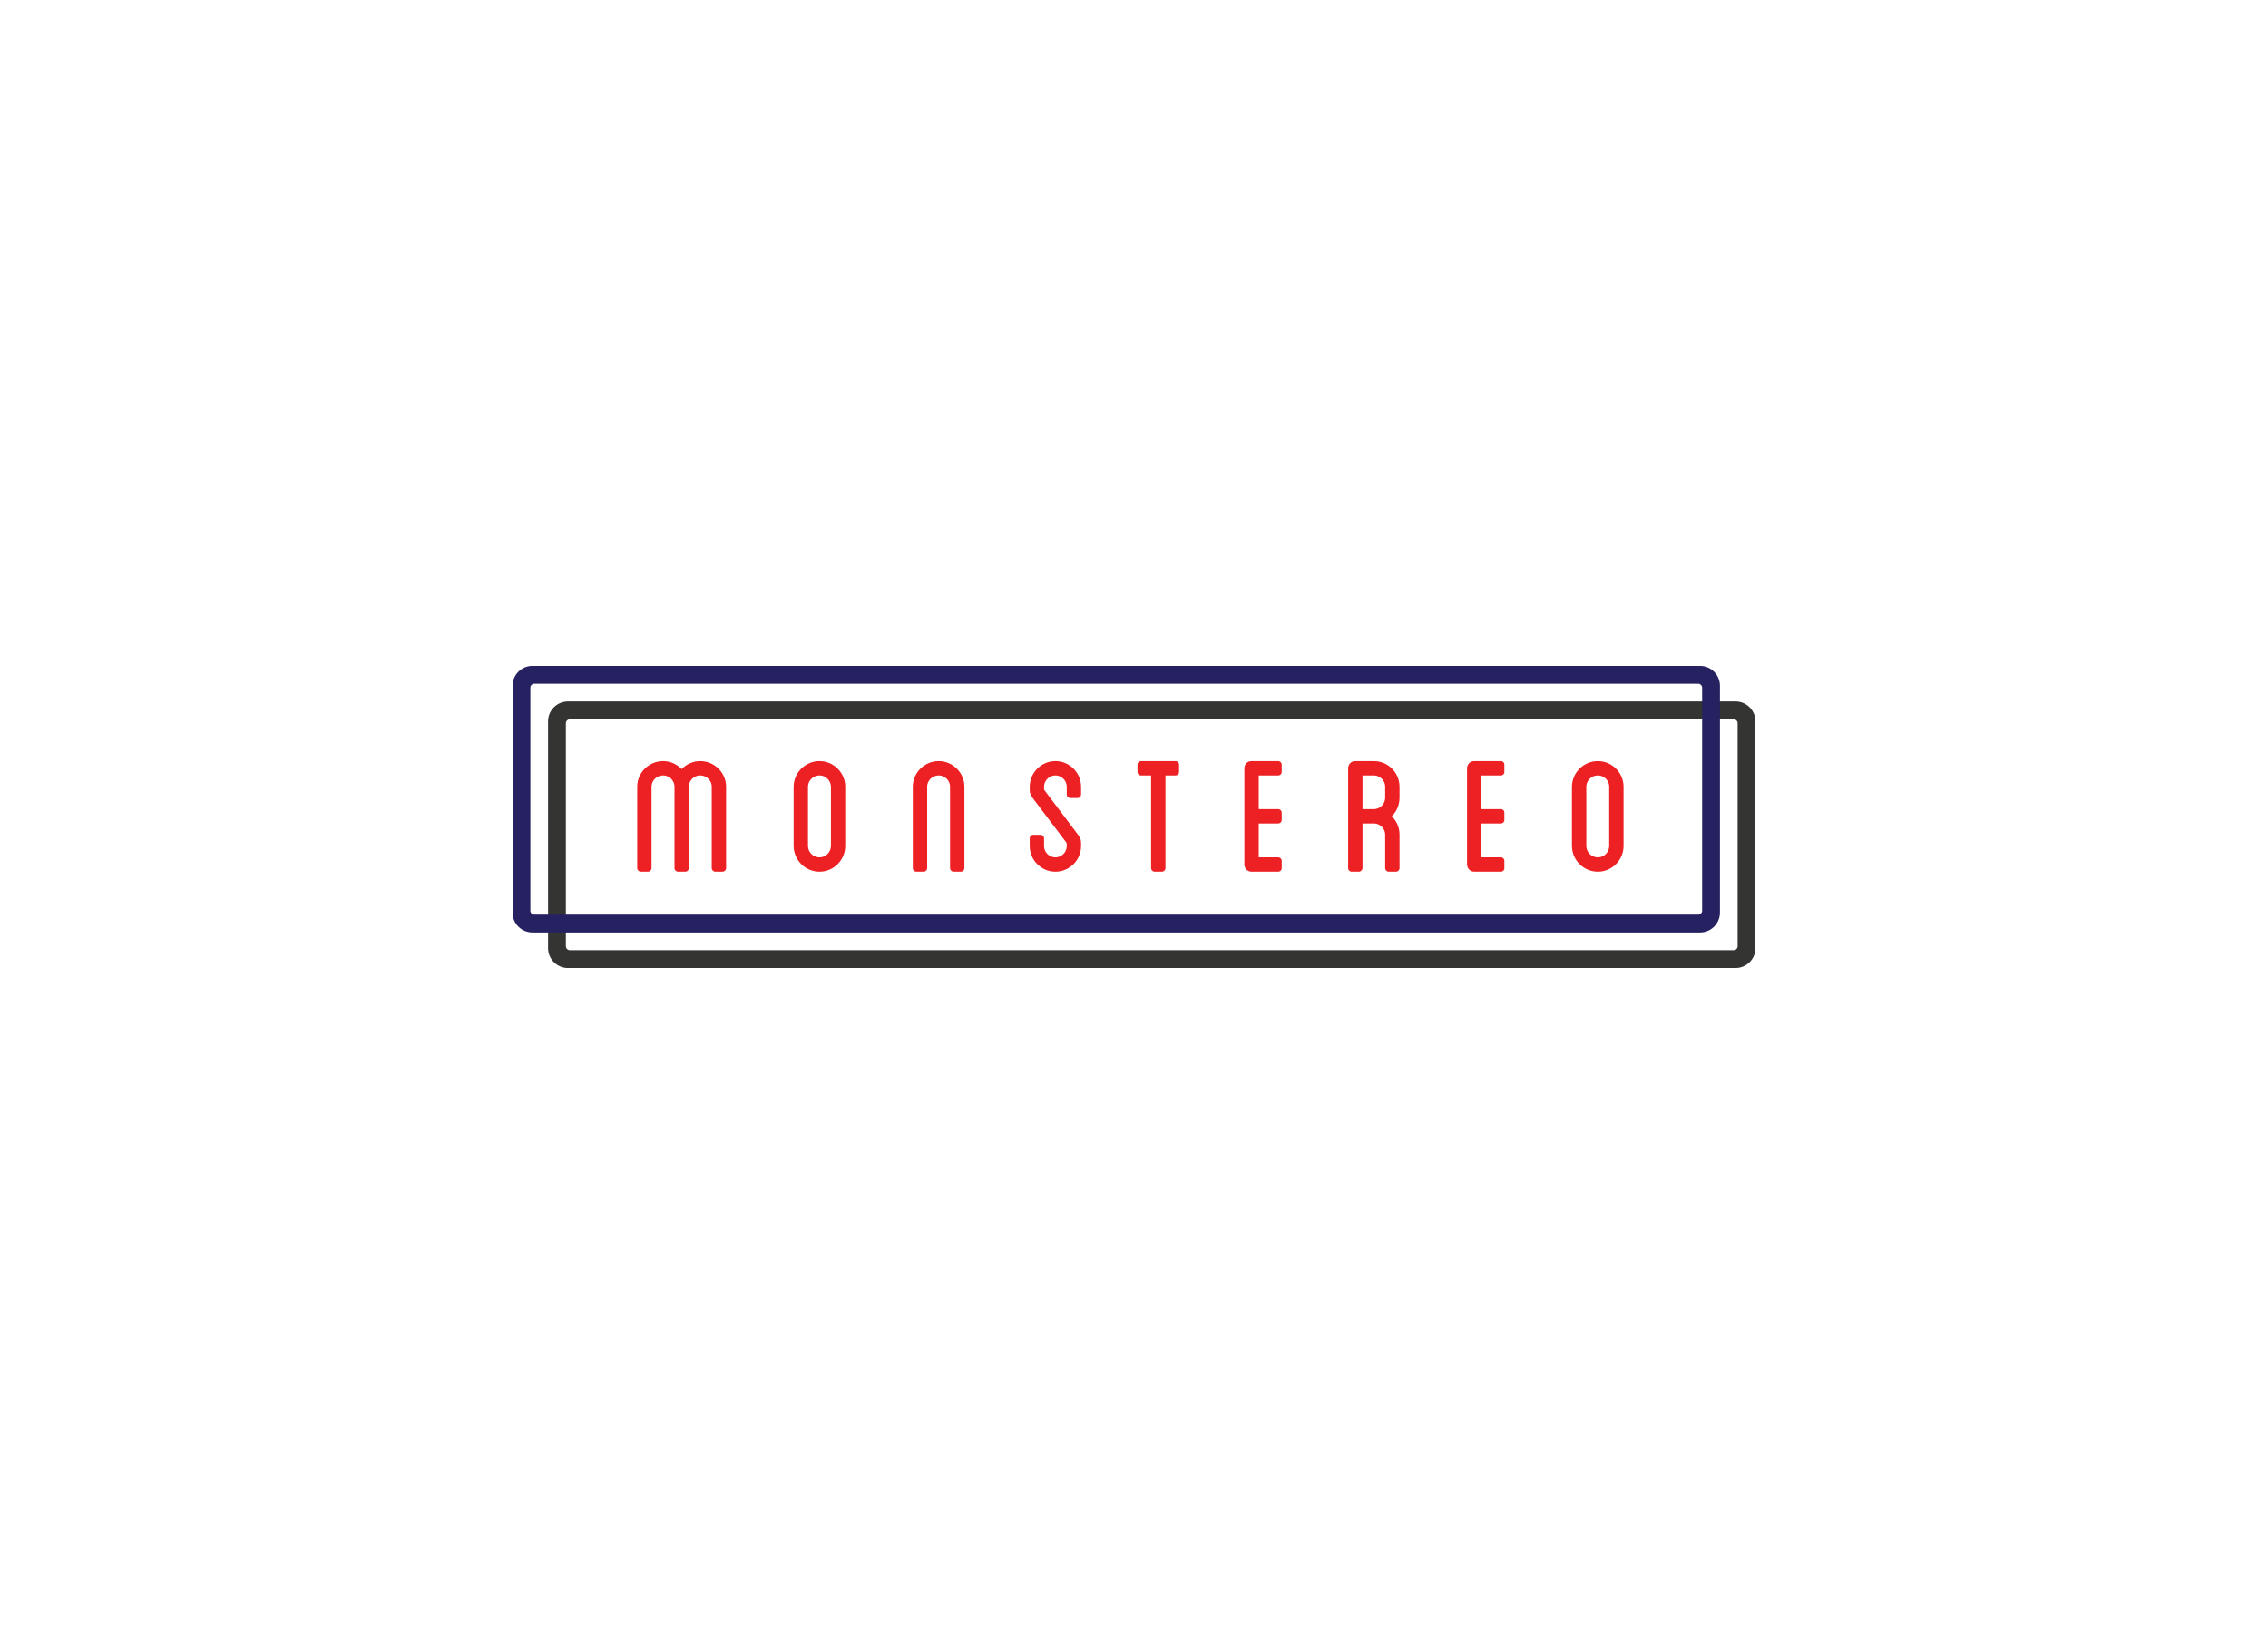 Monstereo.png